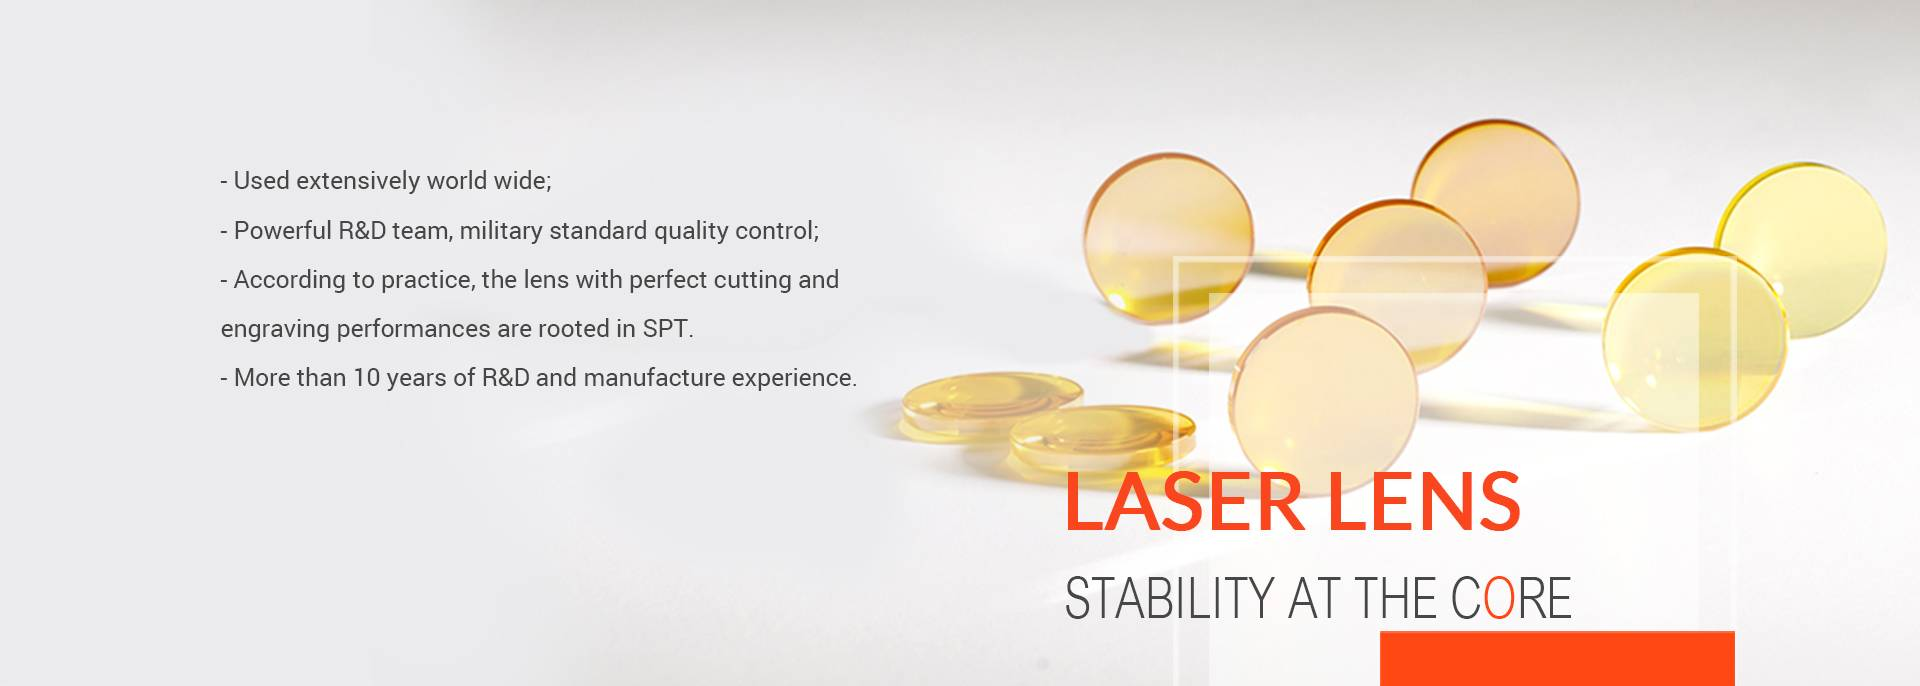 SPT Laser,co2 laser,co2 laser tube,co2 laser lens,laser tube manufacturer,co2 laser machine spare parts,co2 laser kit,large size laser marking,3D laser marking,dynamic laser marking